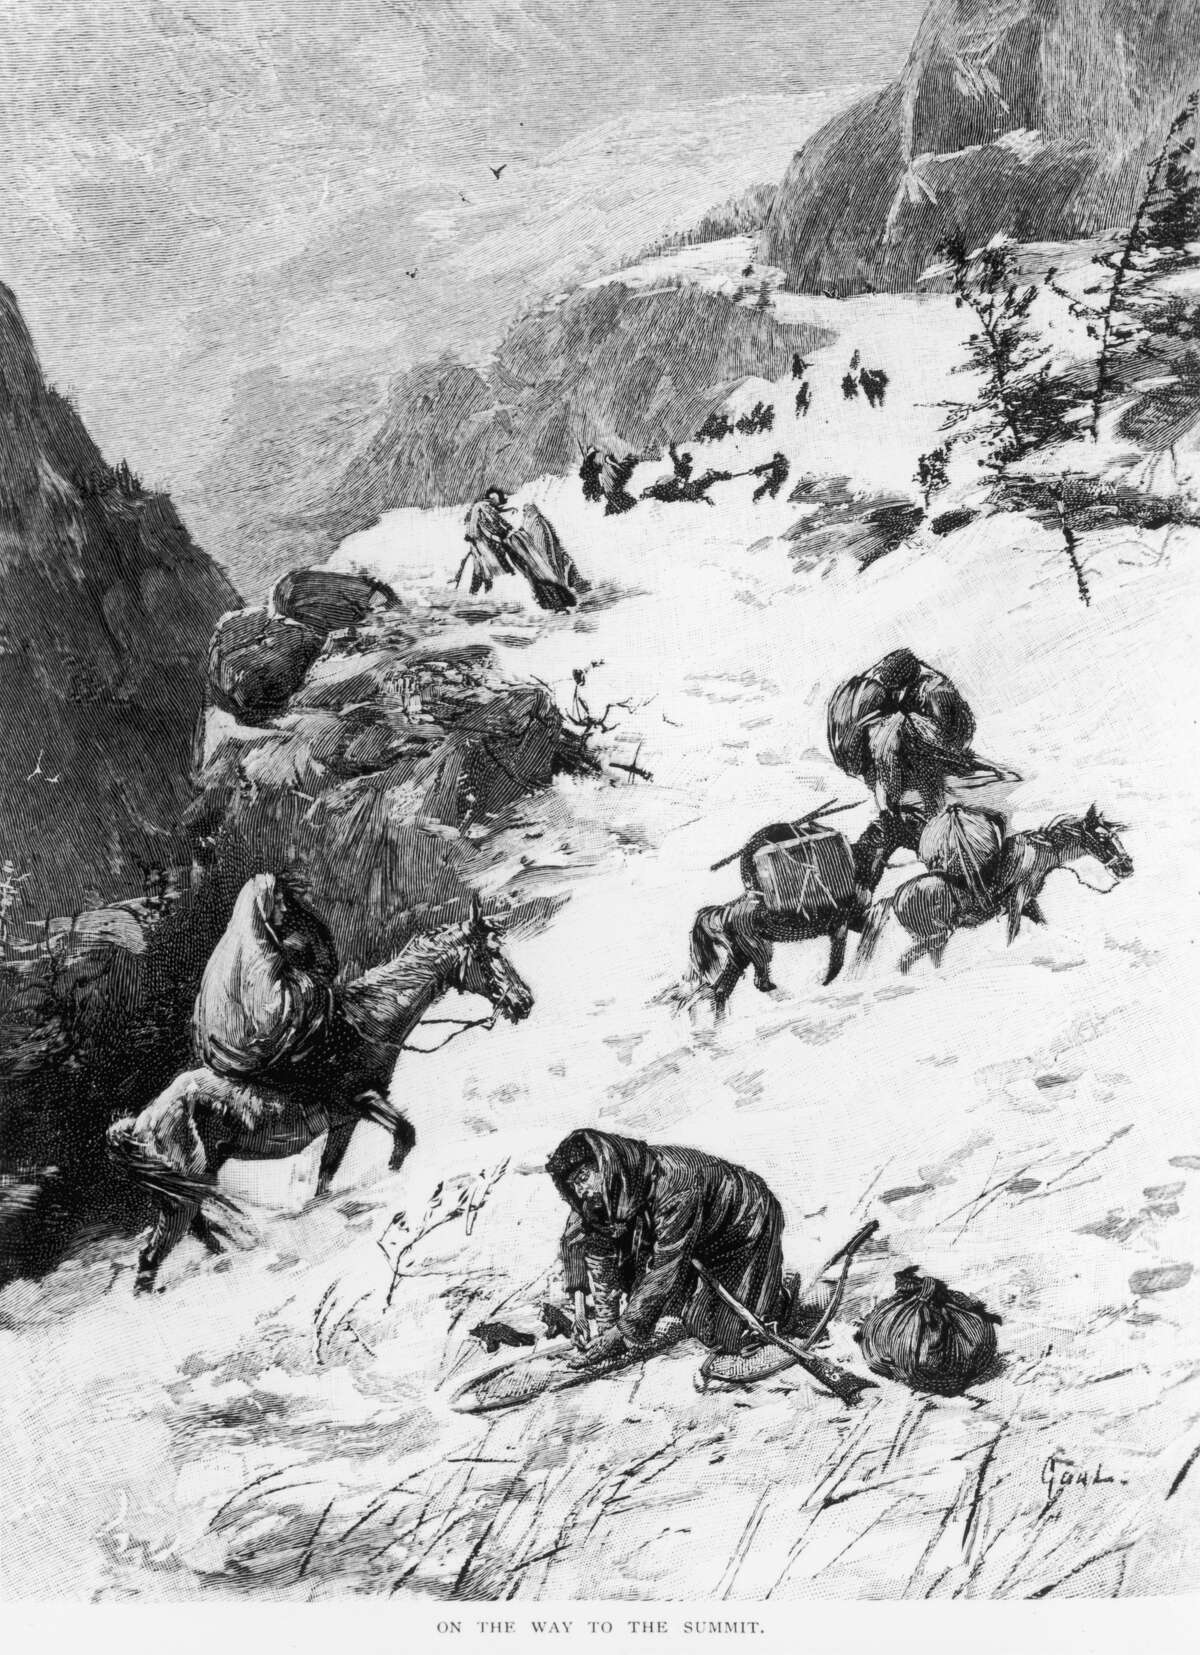 The Donner Party Begins Its Trek April 14, 1846 - The Reed and Donner families leave Missouri headed to California for a new life.Along the way, they get lost in present-day Utah and Nevada. Winter storms beset them, supplies run low and the trip intended to be over by the fall stretches into the winter in the high western mountains. Out of food, some members of the party resort to cannibalism of the already dead to stay alive. Only 48 members of the 87-person party make it to California.